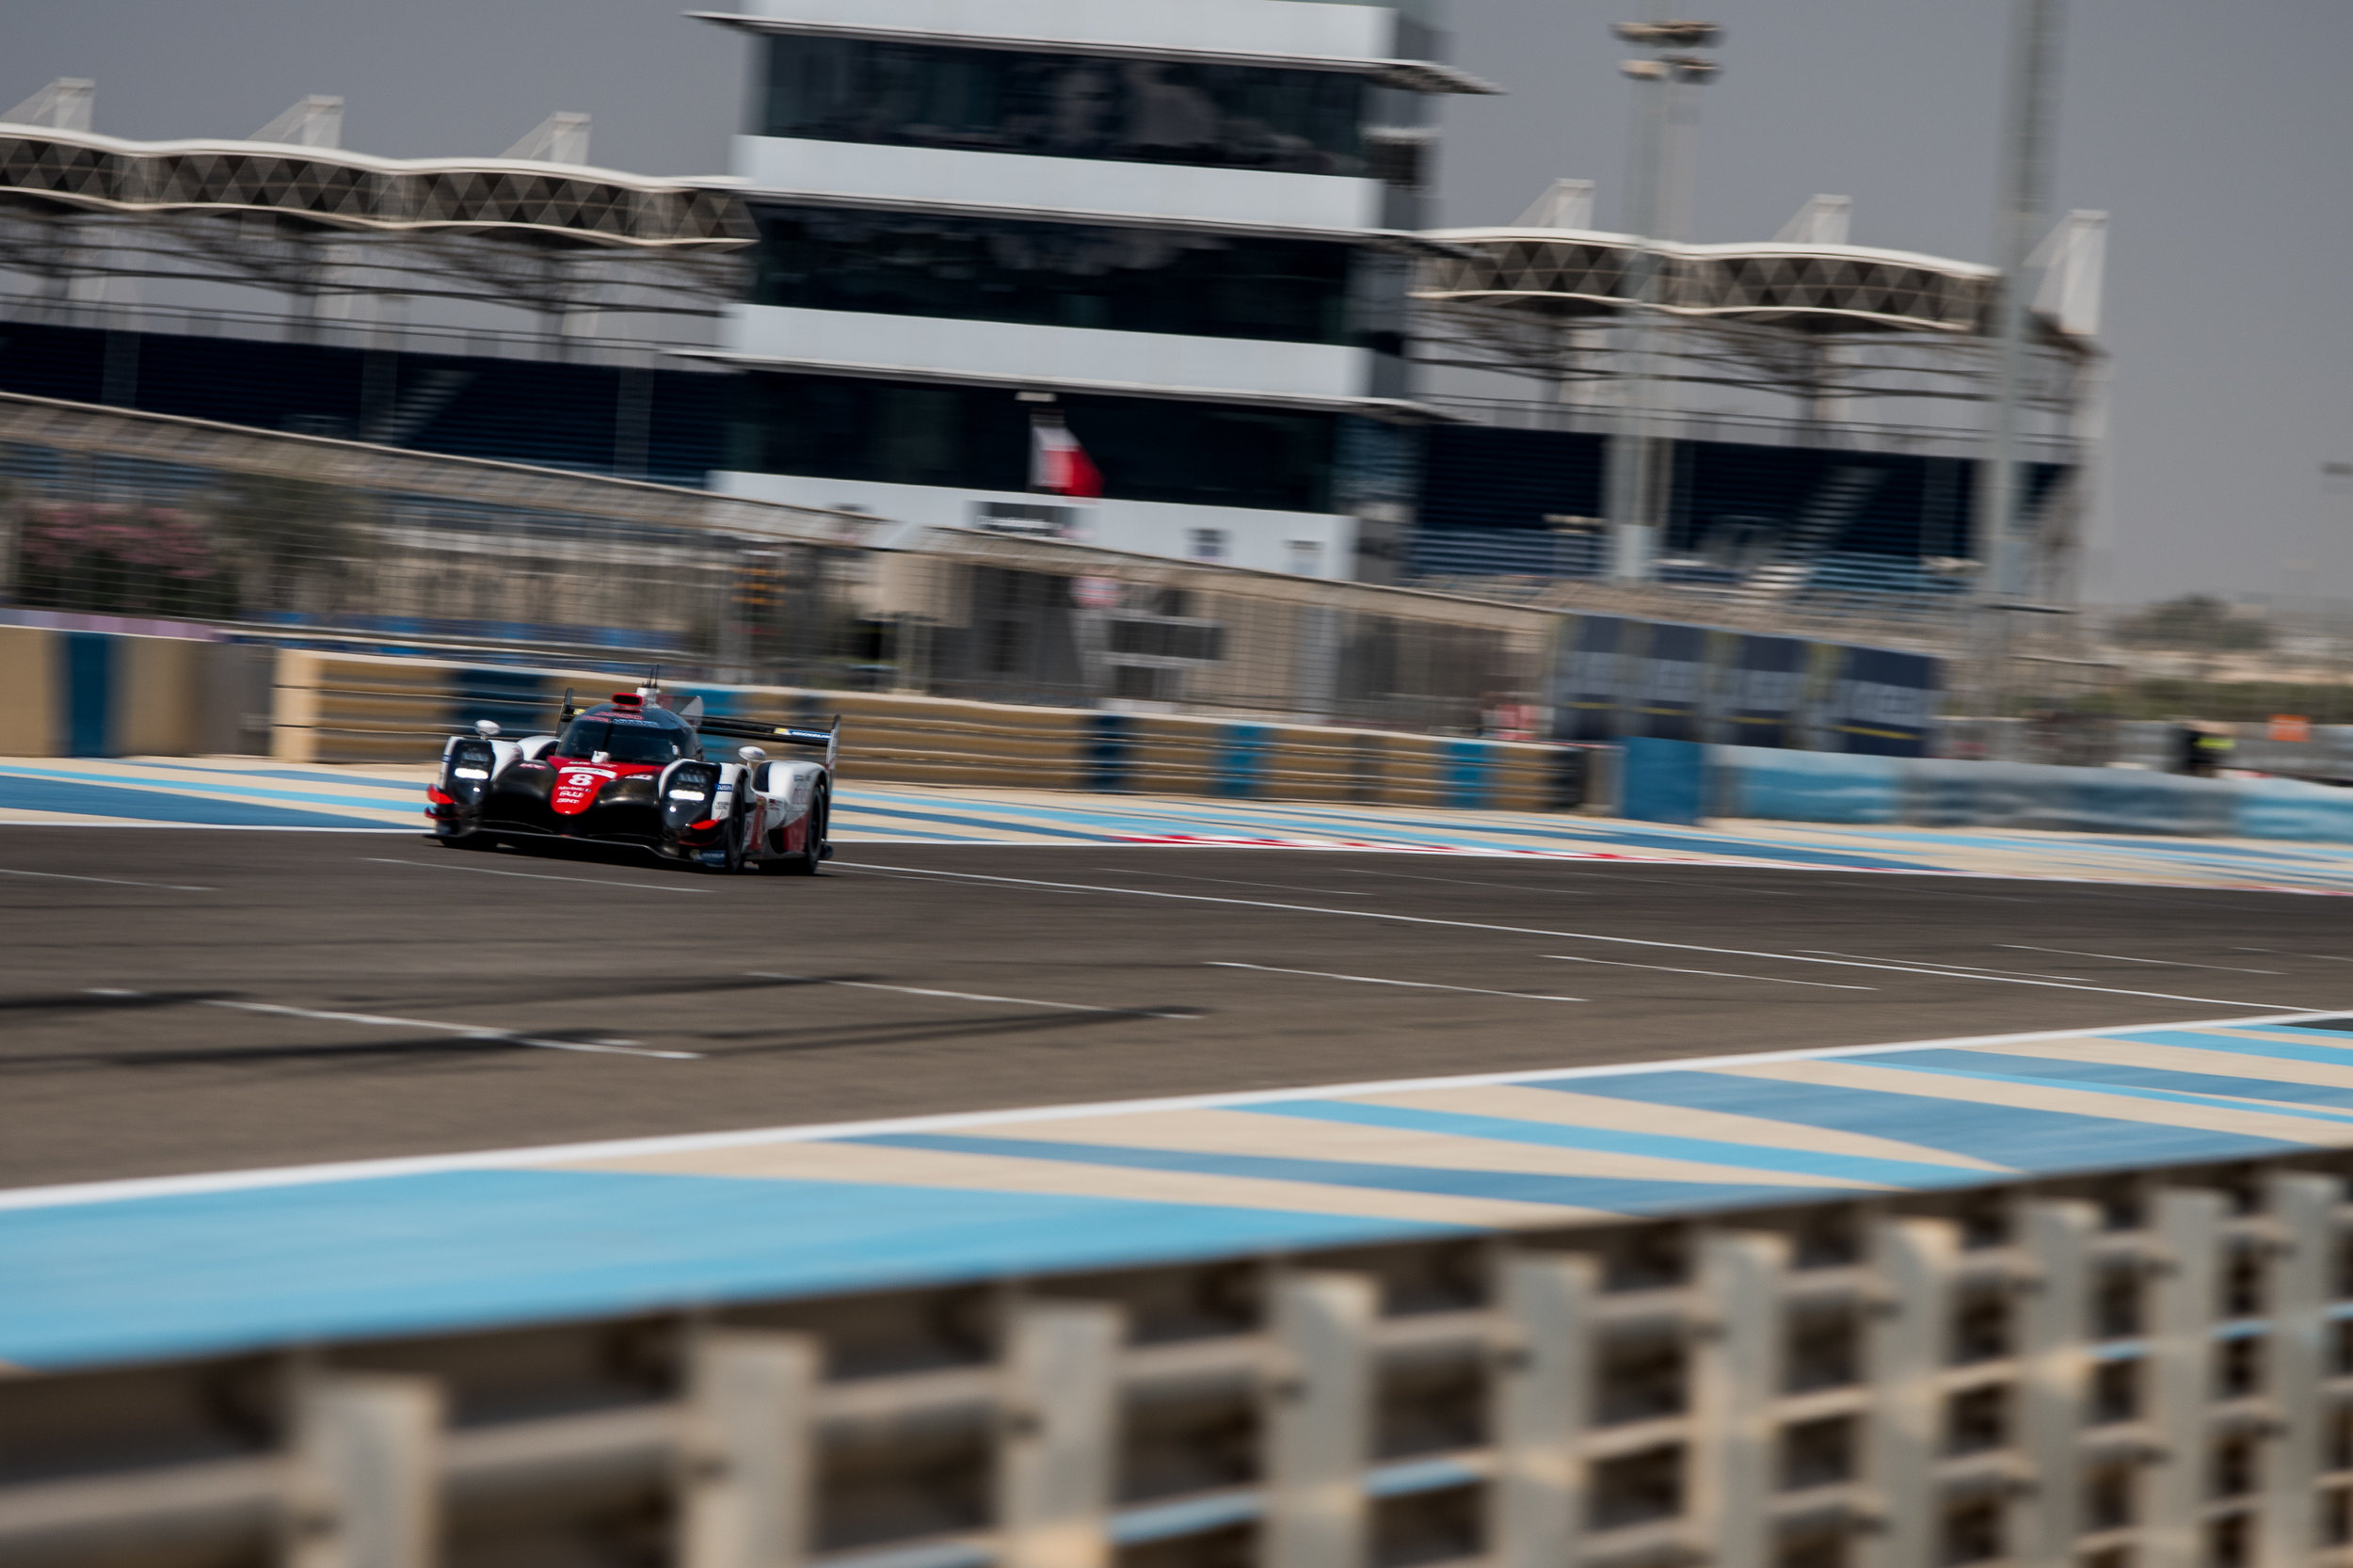 Incoming! The LMP1 cars blast down the straights rather wonderfully. Photo: WEC/Adrenal Media